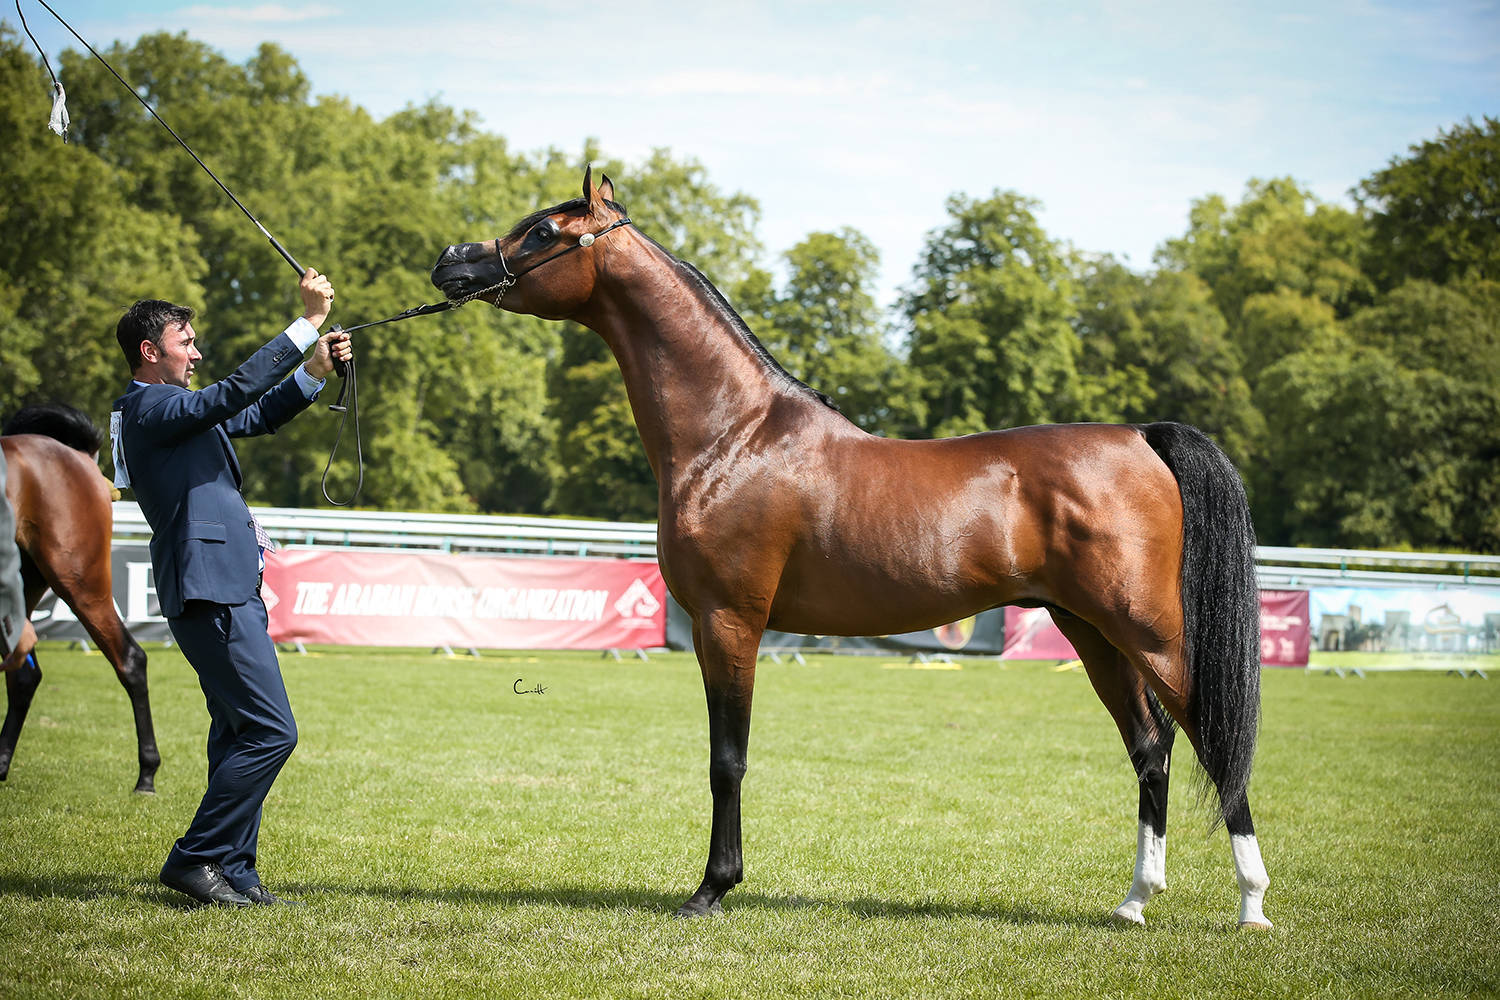 Magesty KA, Silver Champion Junior Colt